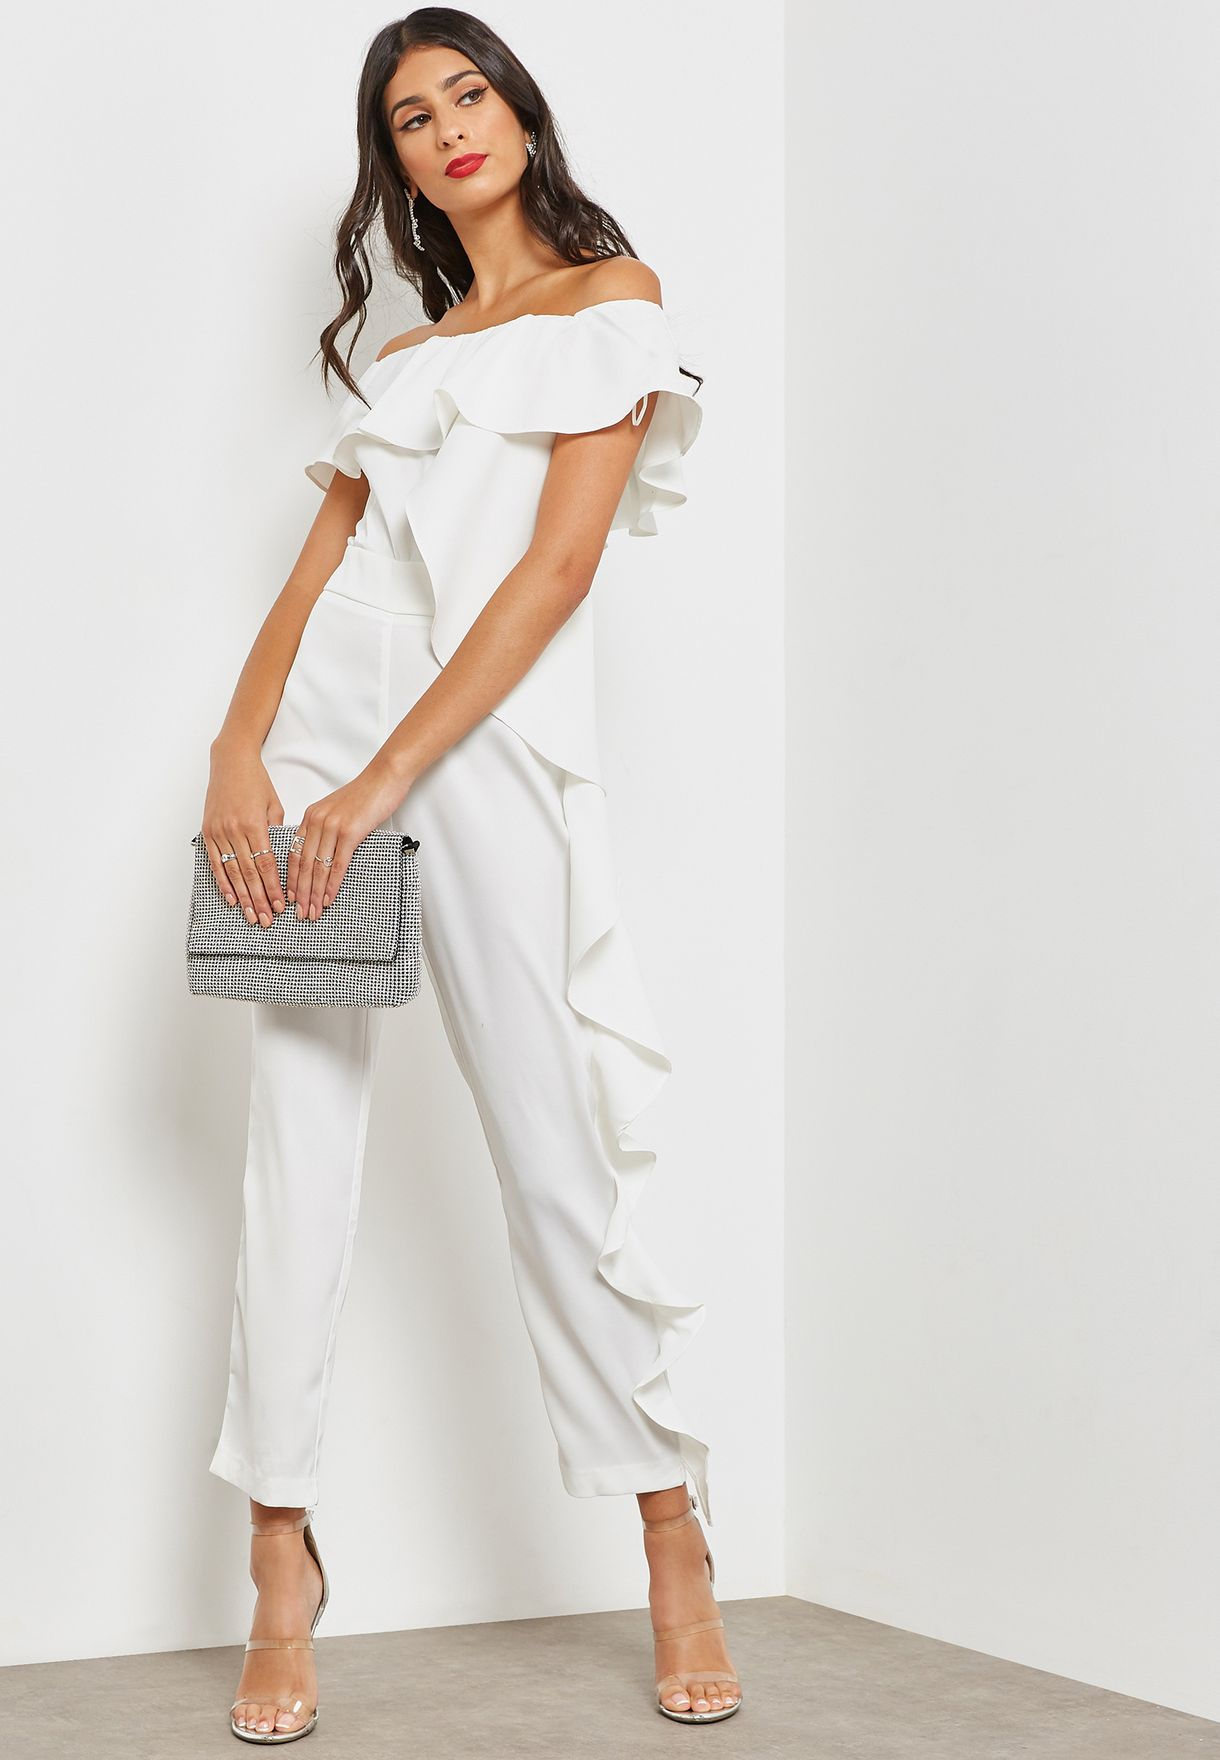 a7d618f24cff Shop Ginger white Ruffle Detail Bardot Jumpsuit YG17318 for Women in ...